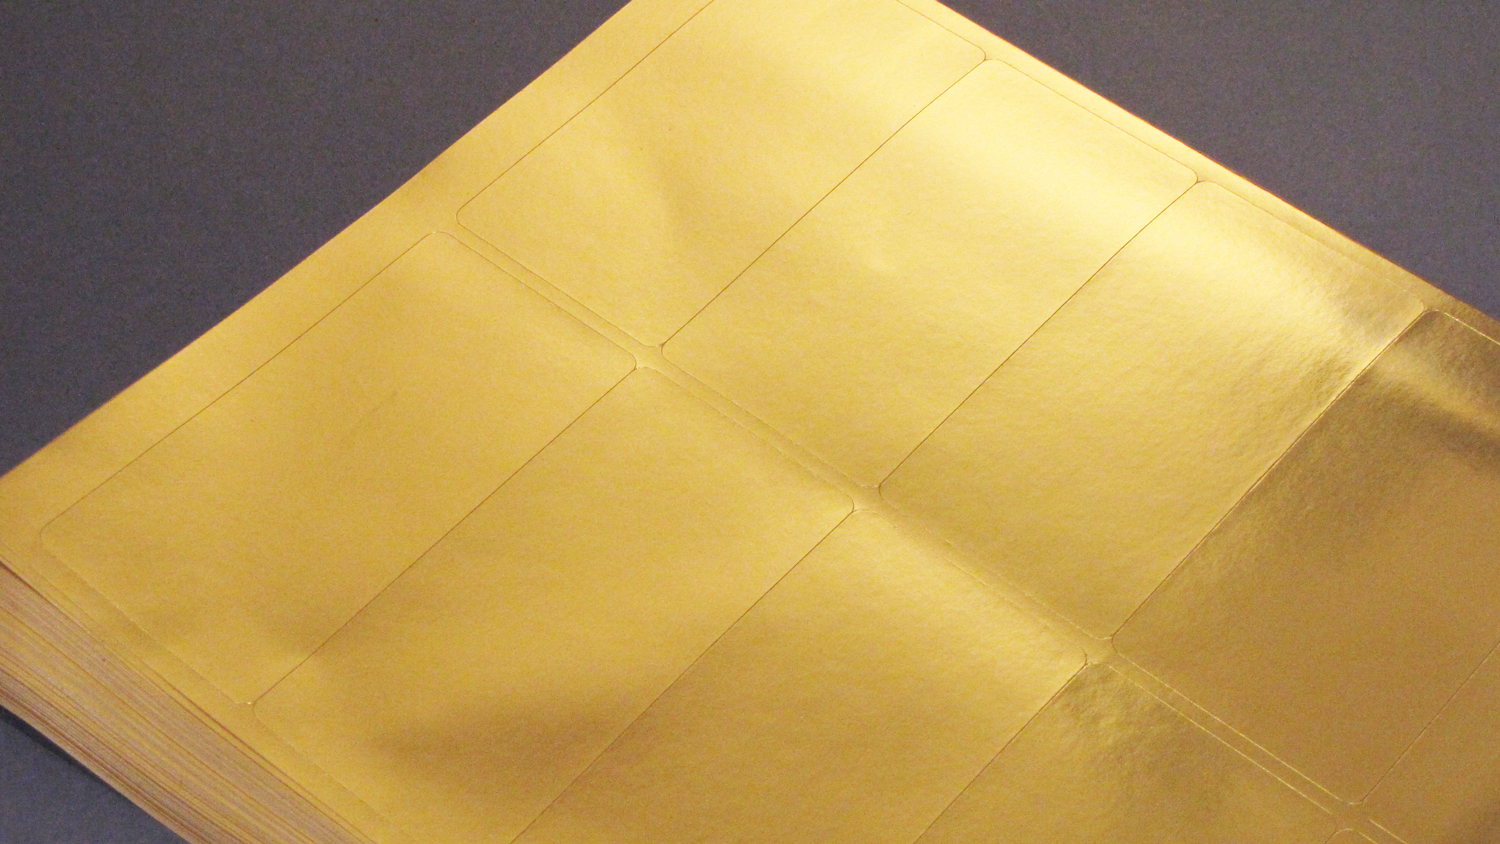 4 x 2 Gold Foil Labels for Lasers 25 sheets 4020GF